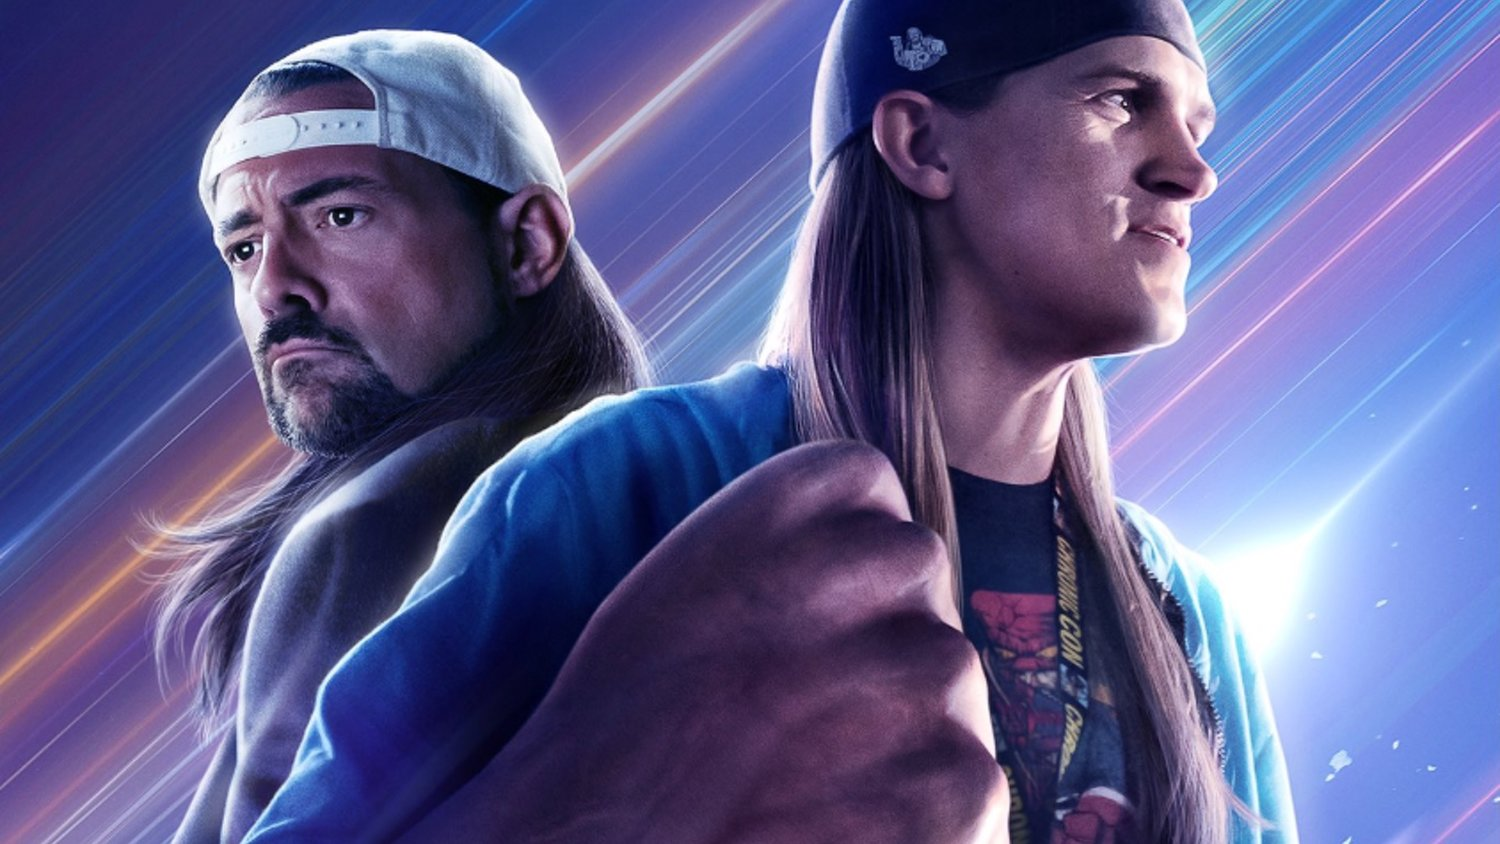 JAY AND SILENT BOB REBOOT Gets an AVENGERS: ENDGAME-Style Poster